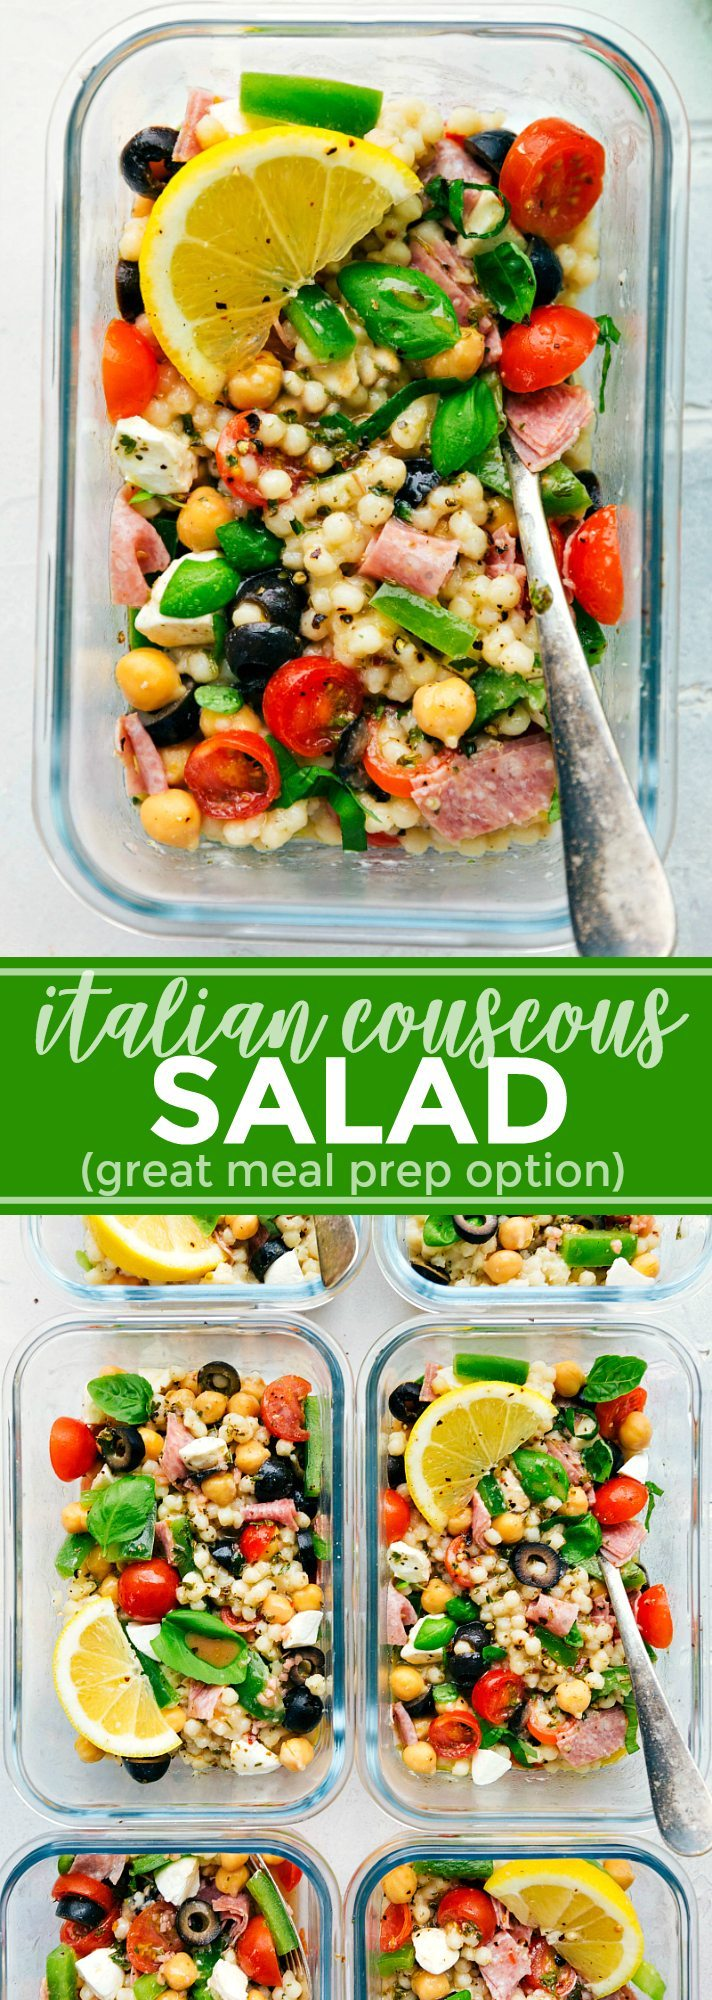 A healthy and simple Italian Couscous Salad that everyone will go crazy for! (Meal prep options and tips included) via chelseasmessyapron.com   #couscous #italian #salad #easy #quick #healthy #mealprep